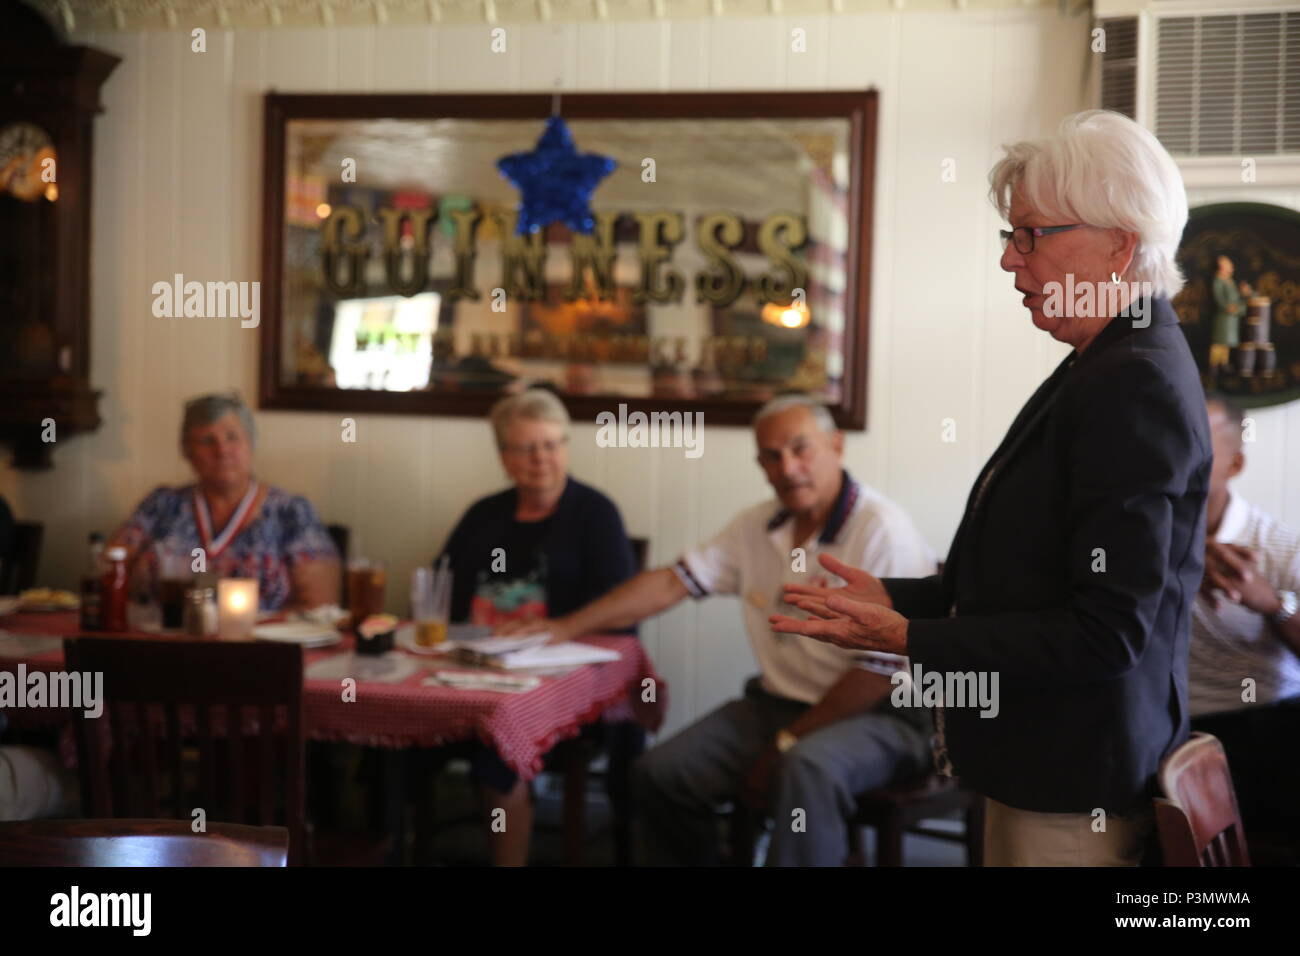 Frances odonnell bristol fourth of july parade organizer gives frances odonnell bristol fourth of july parade organizer gives remarks to marines and sailors during a pub luncheon in bristol rhode island july 2 m4hsunfo